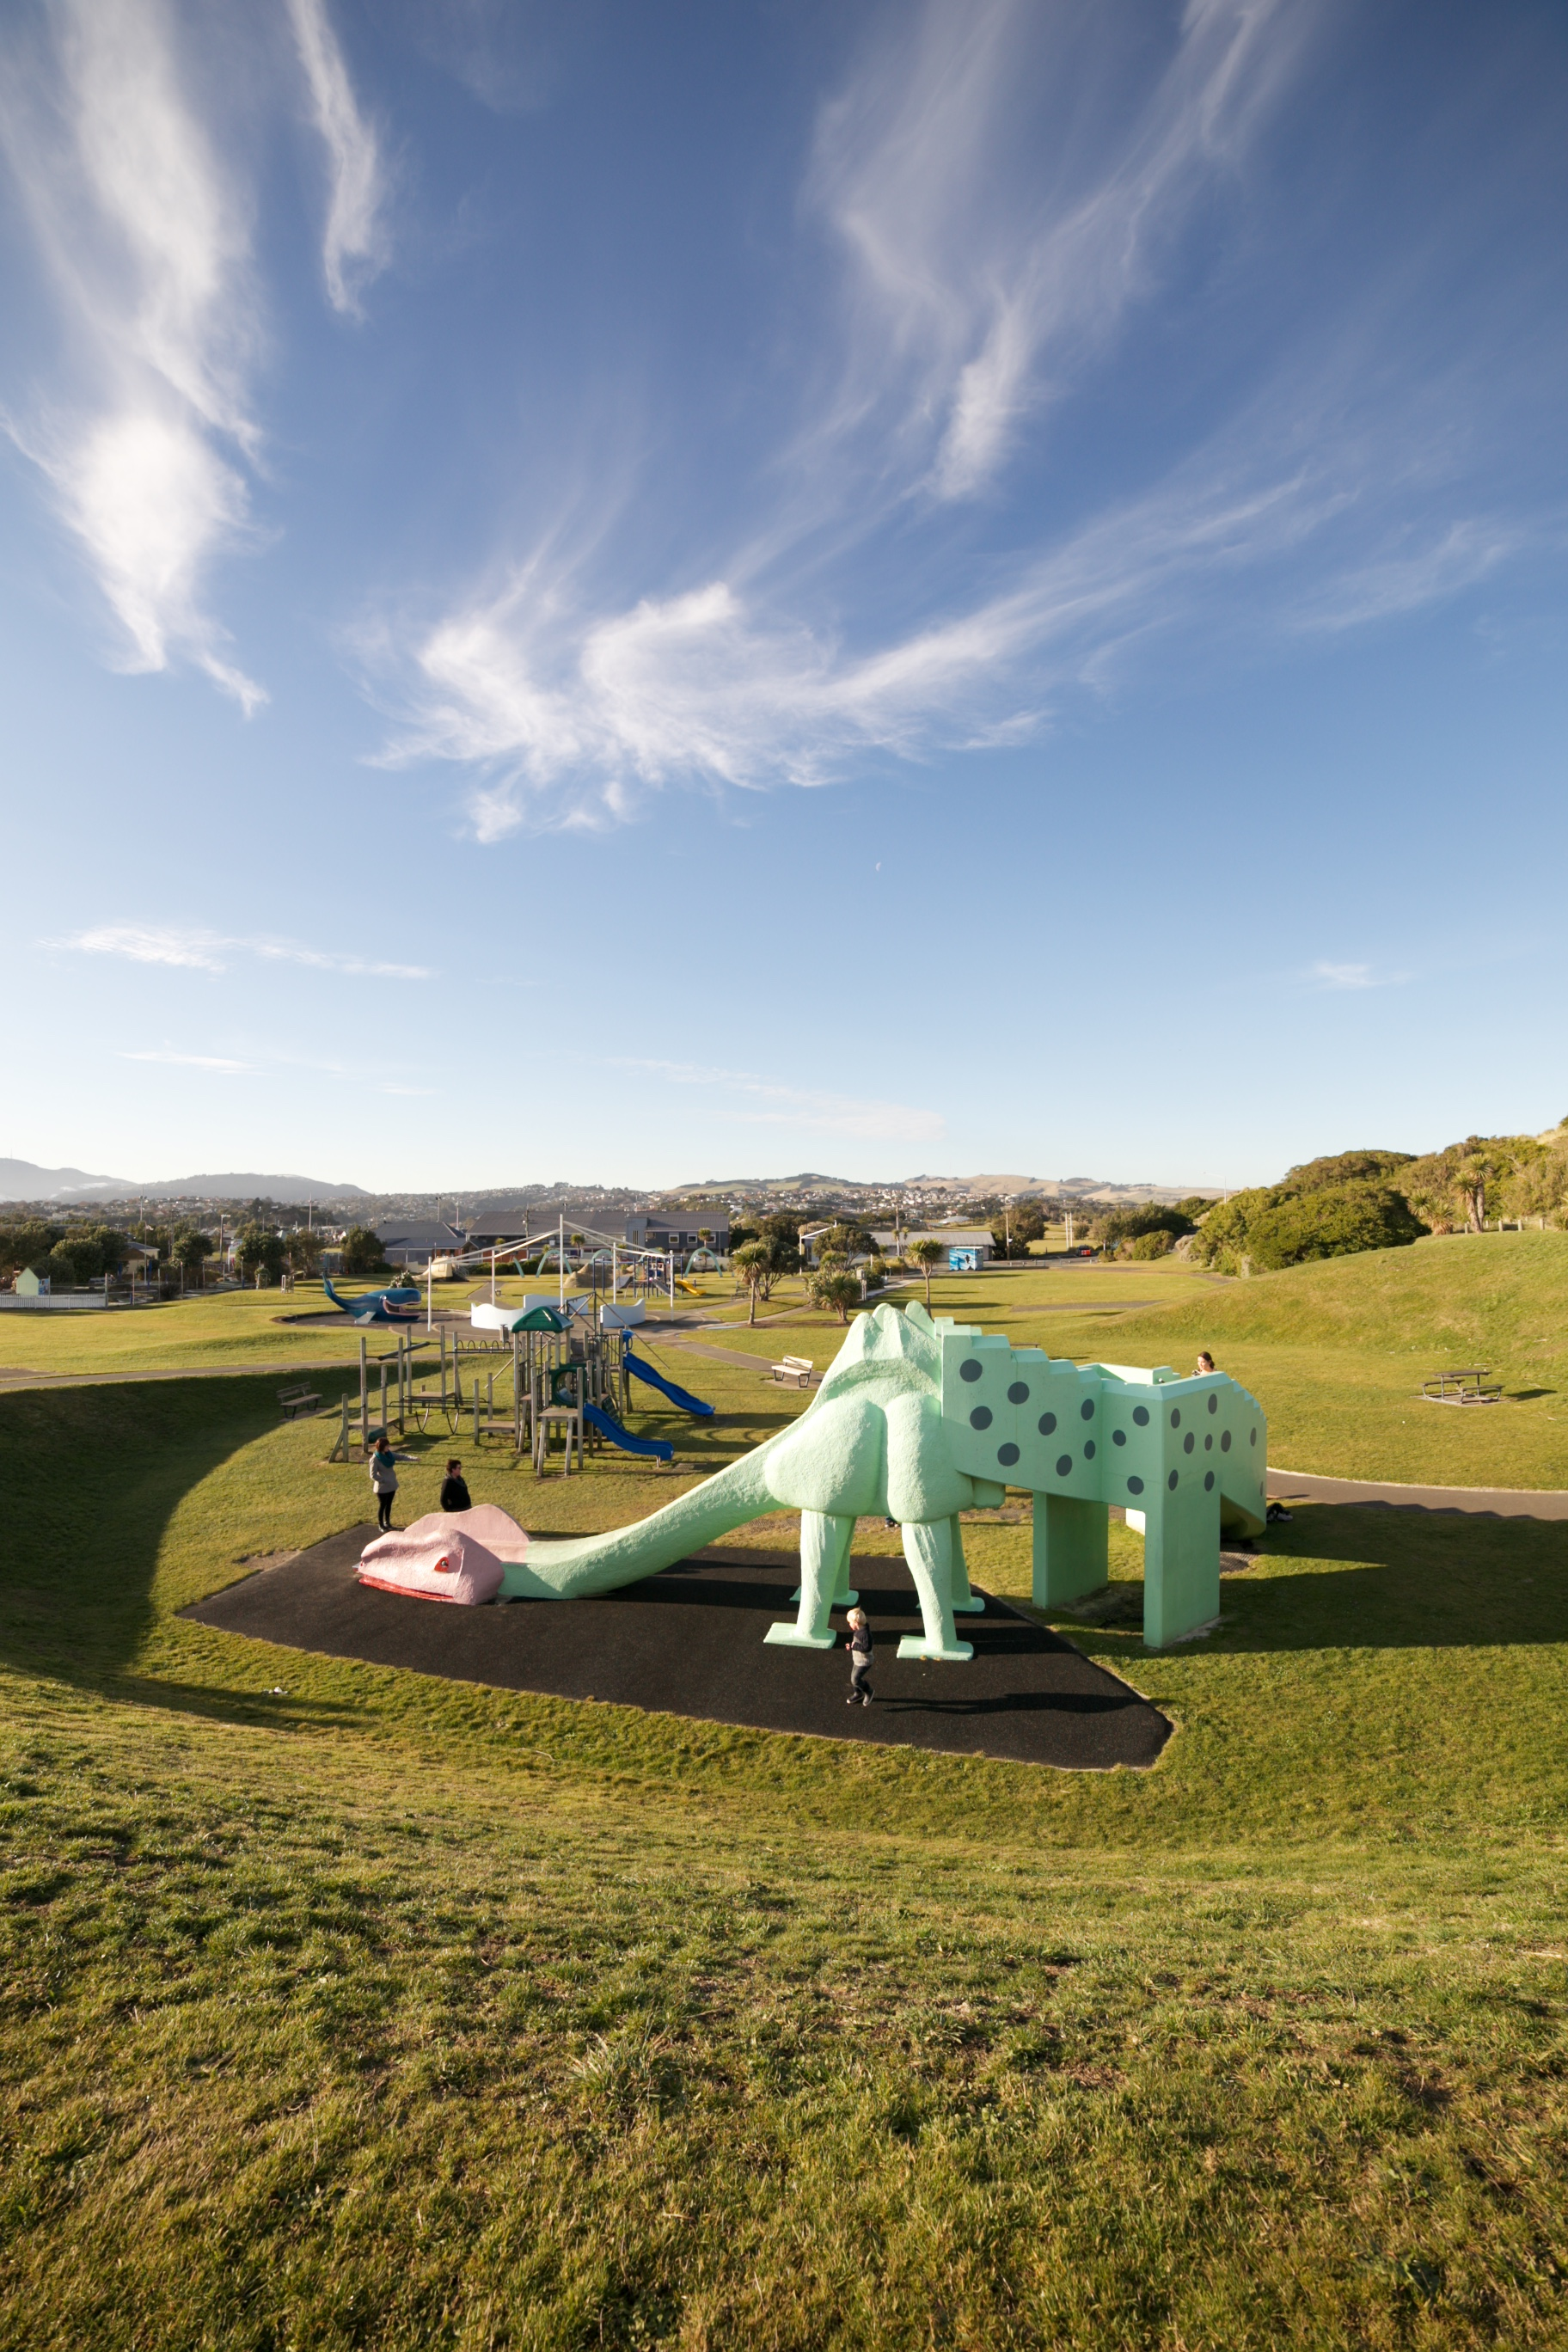 The Dinosaur Park, with the dinosaur slide in Dunedin.